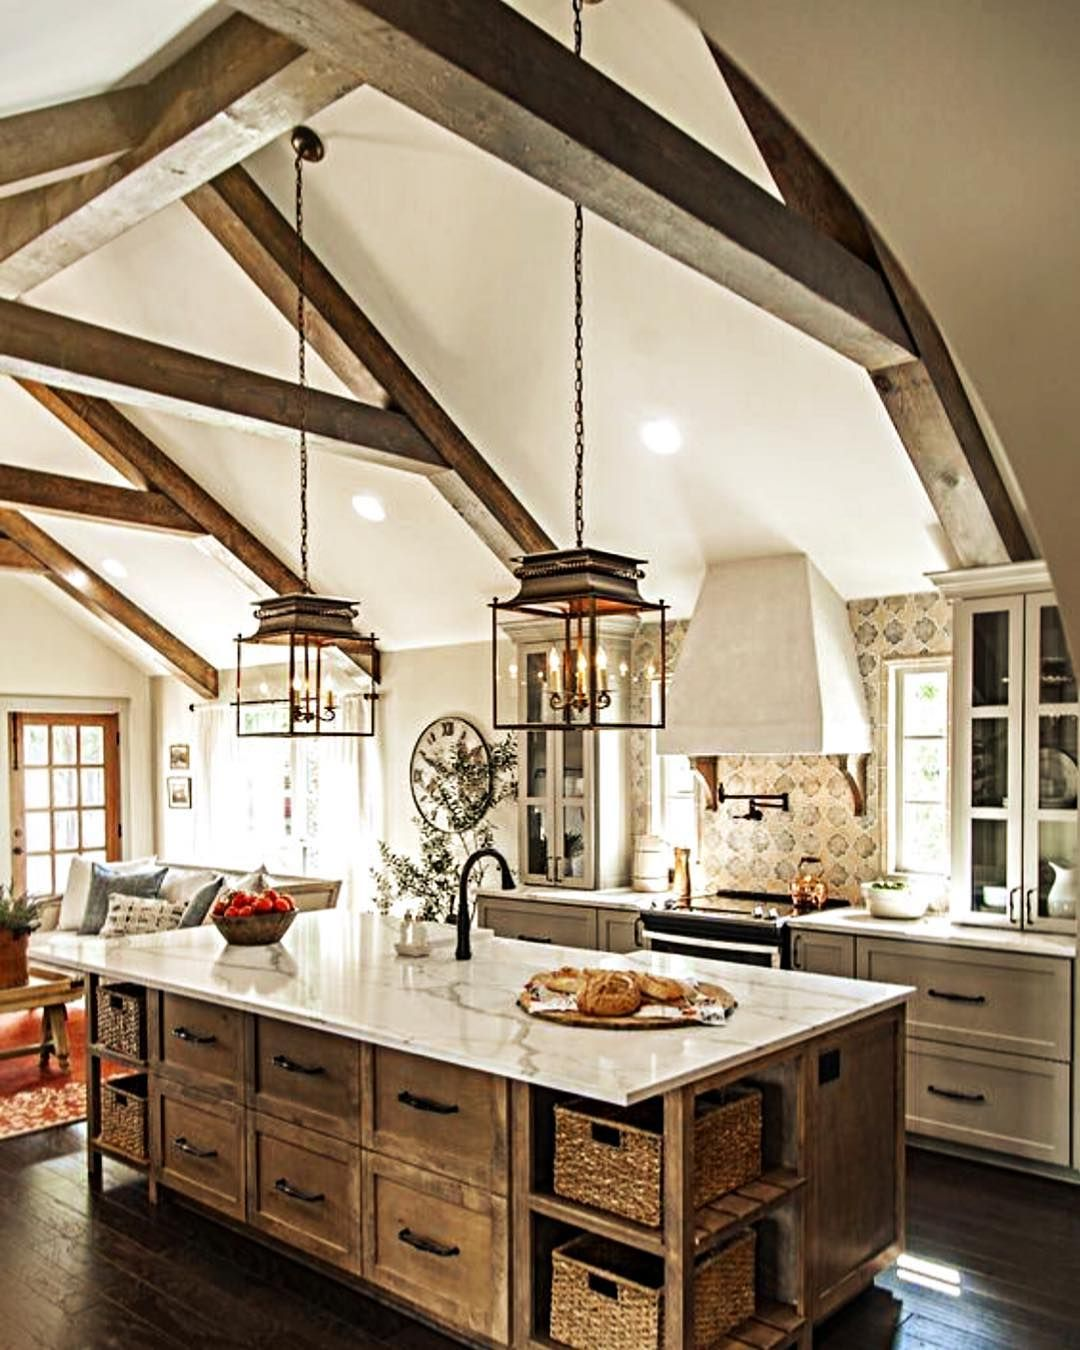 Charming Country Kitchen Decorations With Italian Style: Lola_moonnLove This Rustic Italian Style Kitchen With